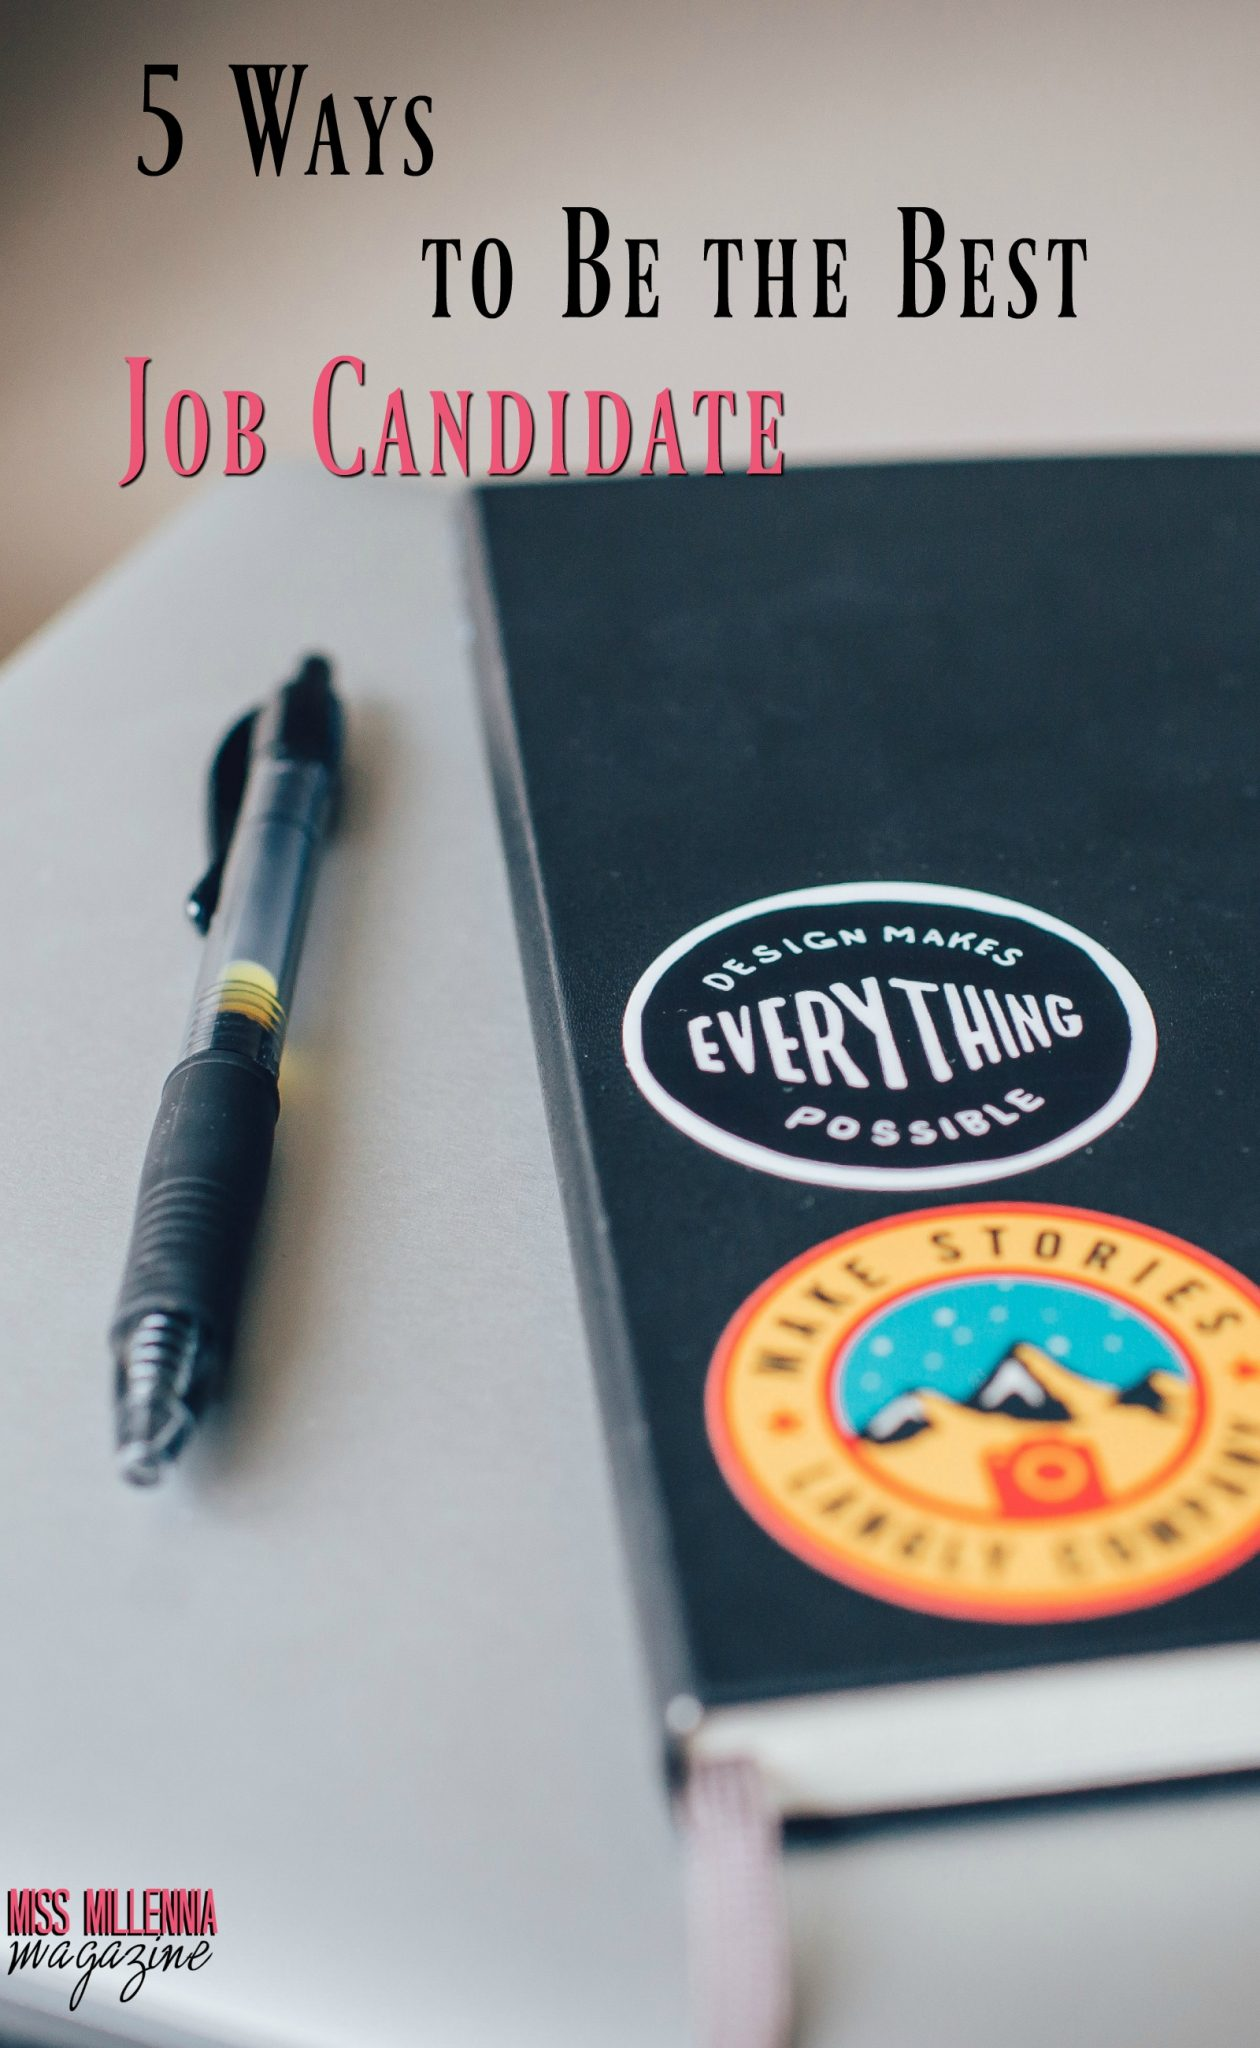 5 Ways to Be the Best Job Candidate